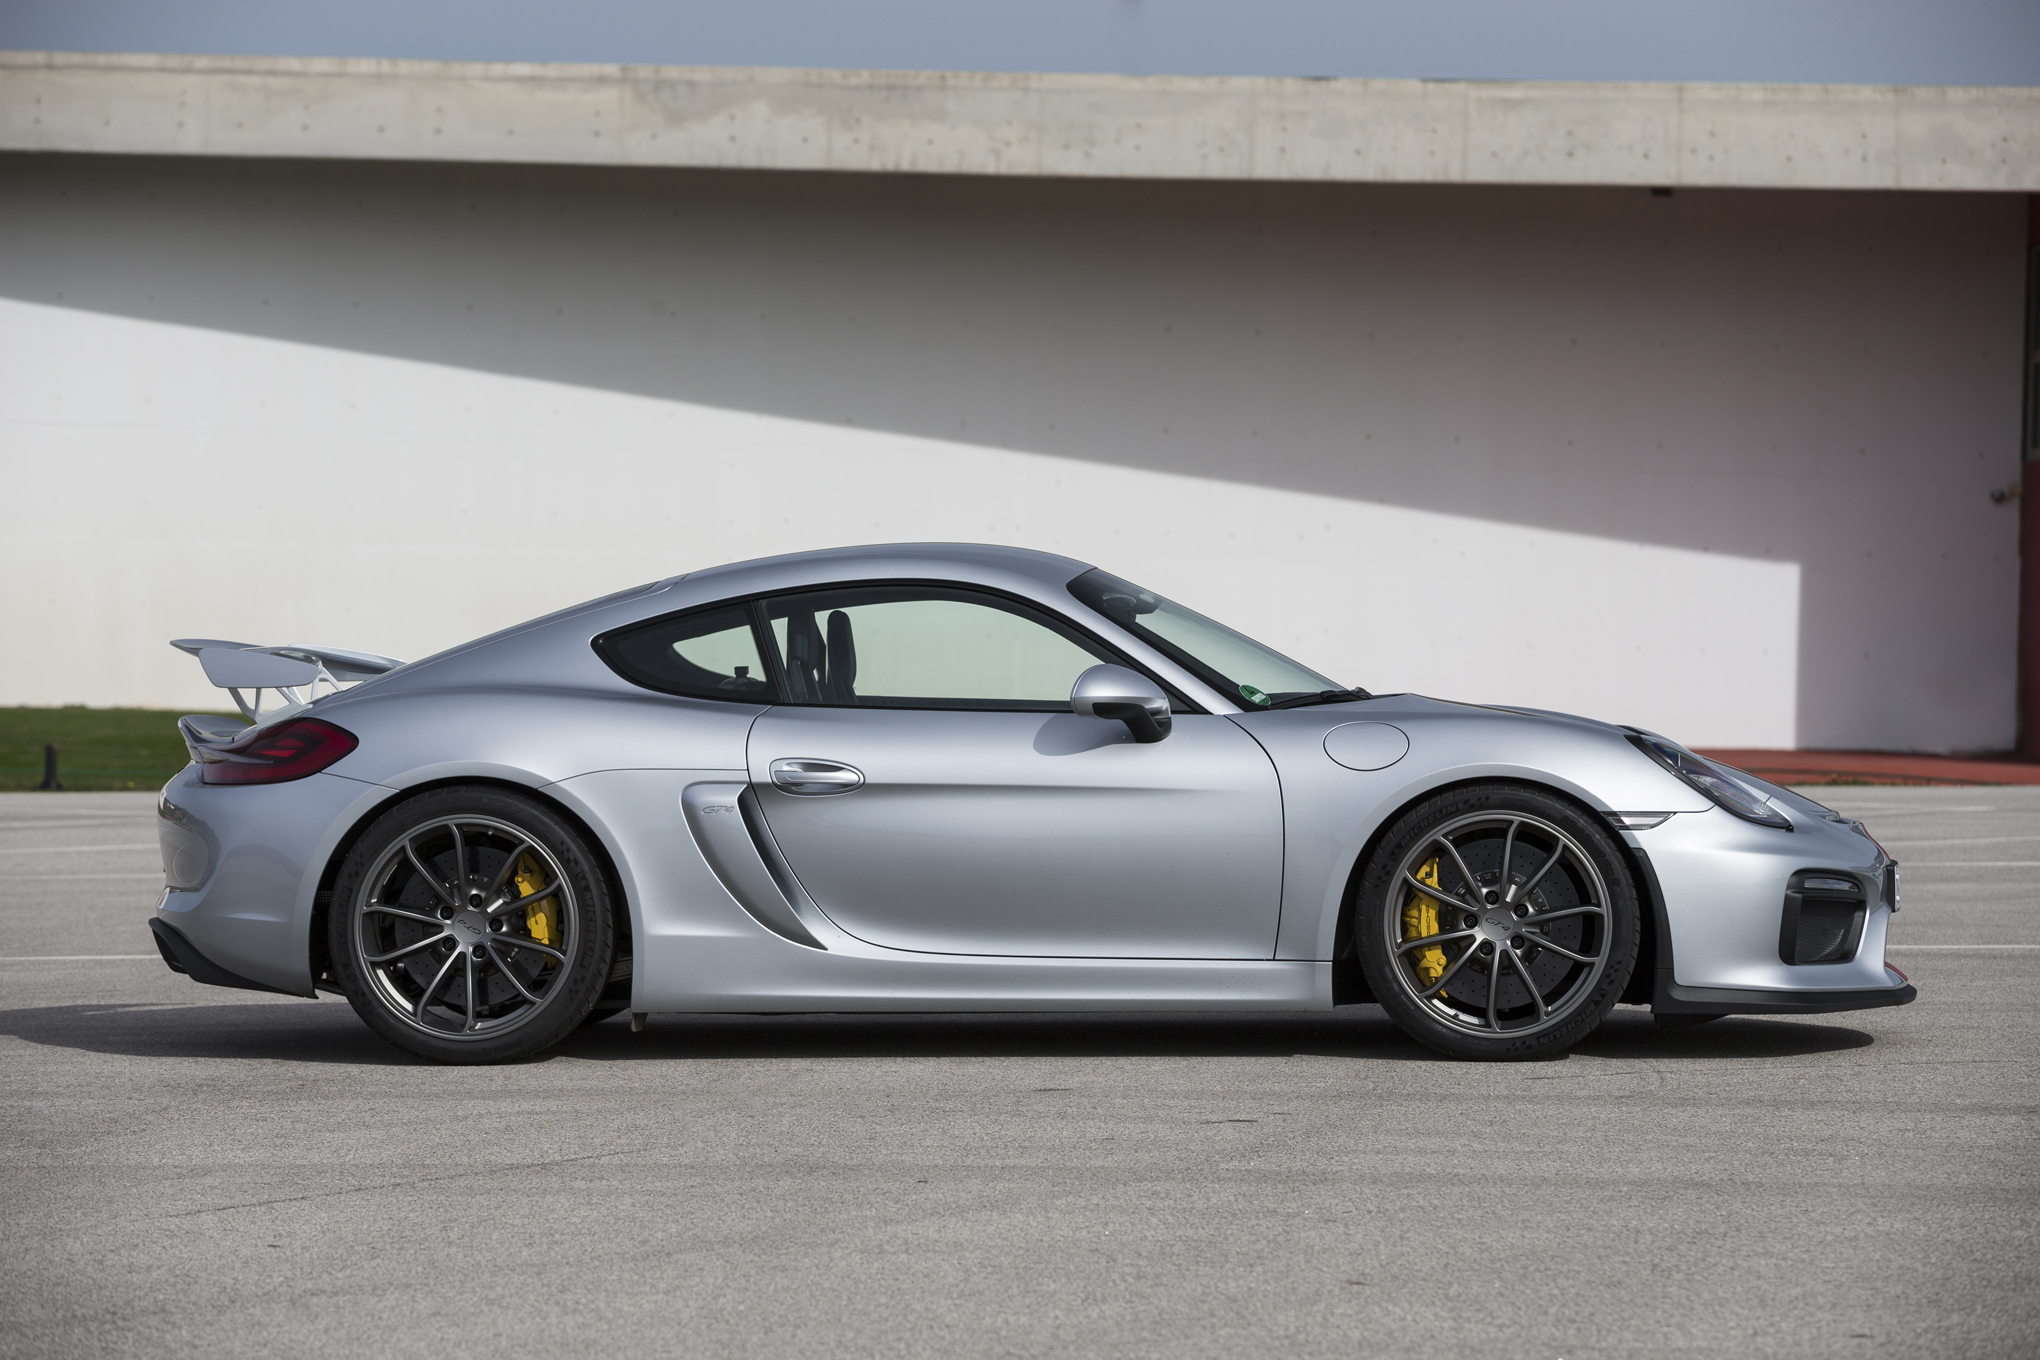 Porsche Cayman GT4 Ultimate Guide: Review, Price, Specs